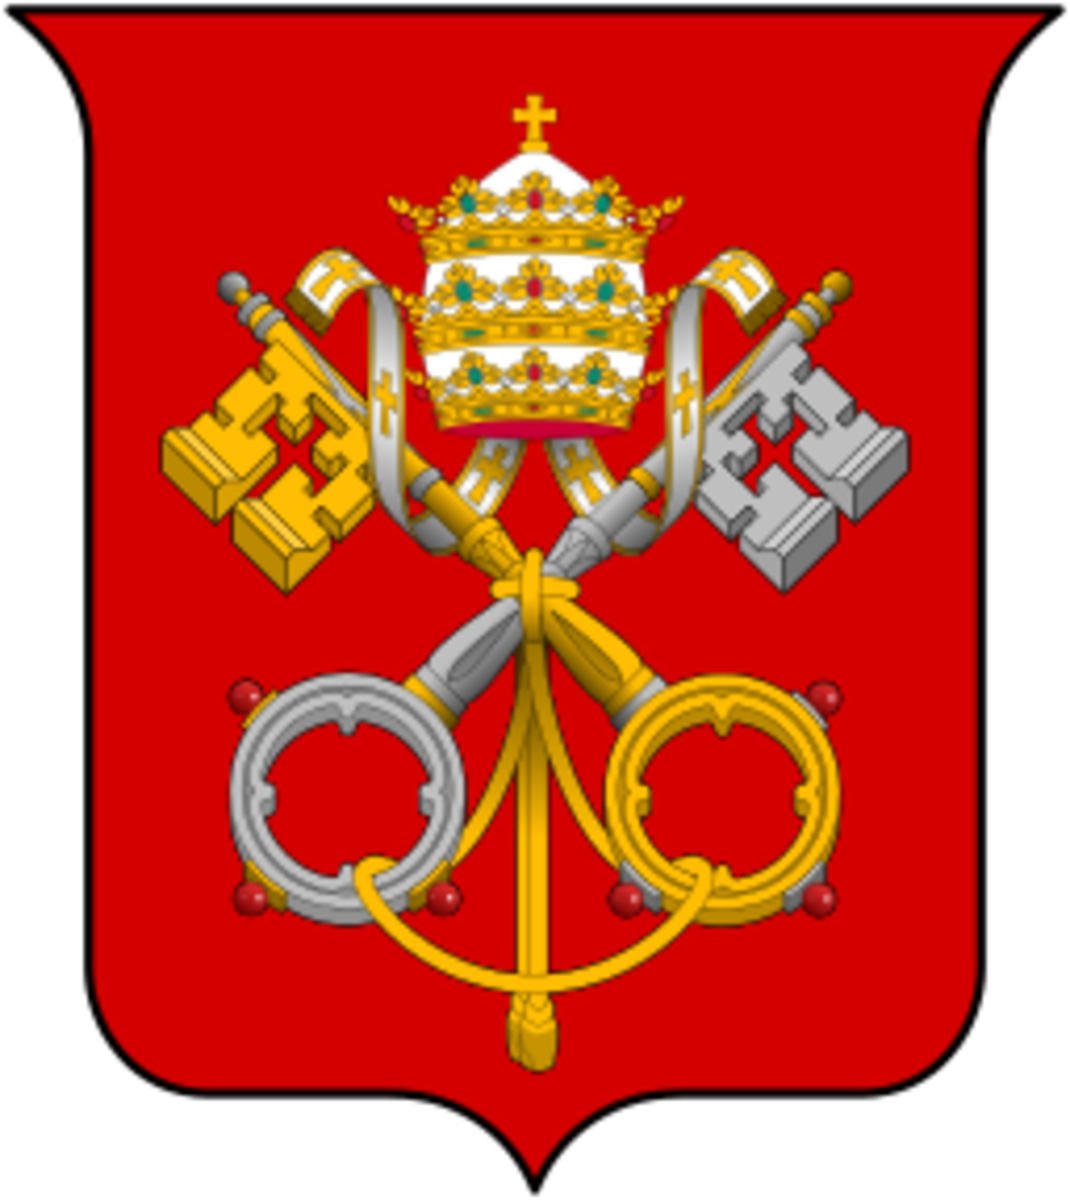 Coat of Arms of the Congregatio Pro Doctrina Fidei